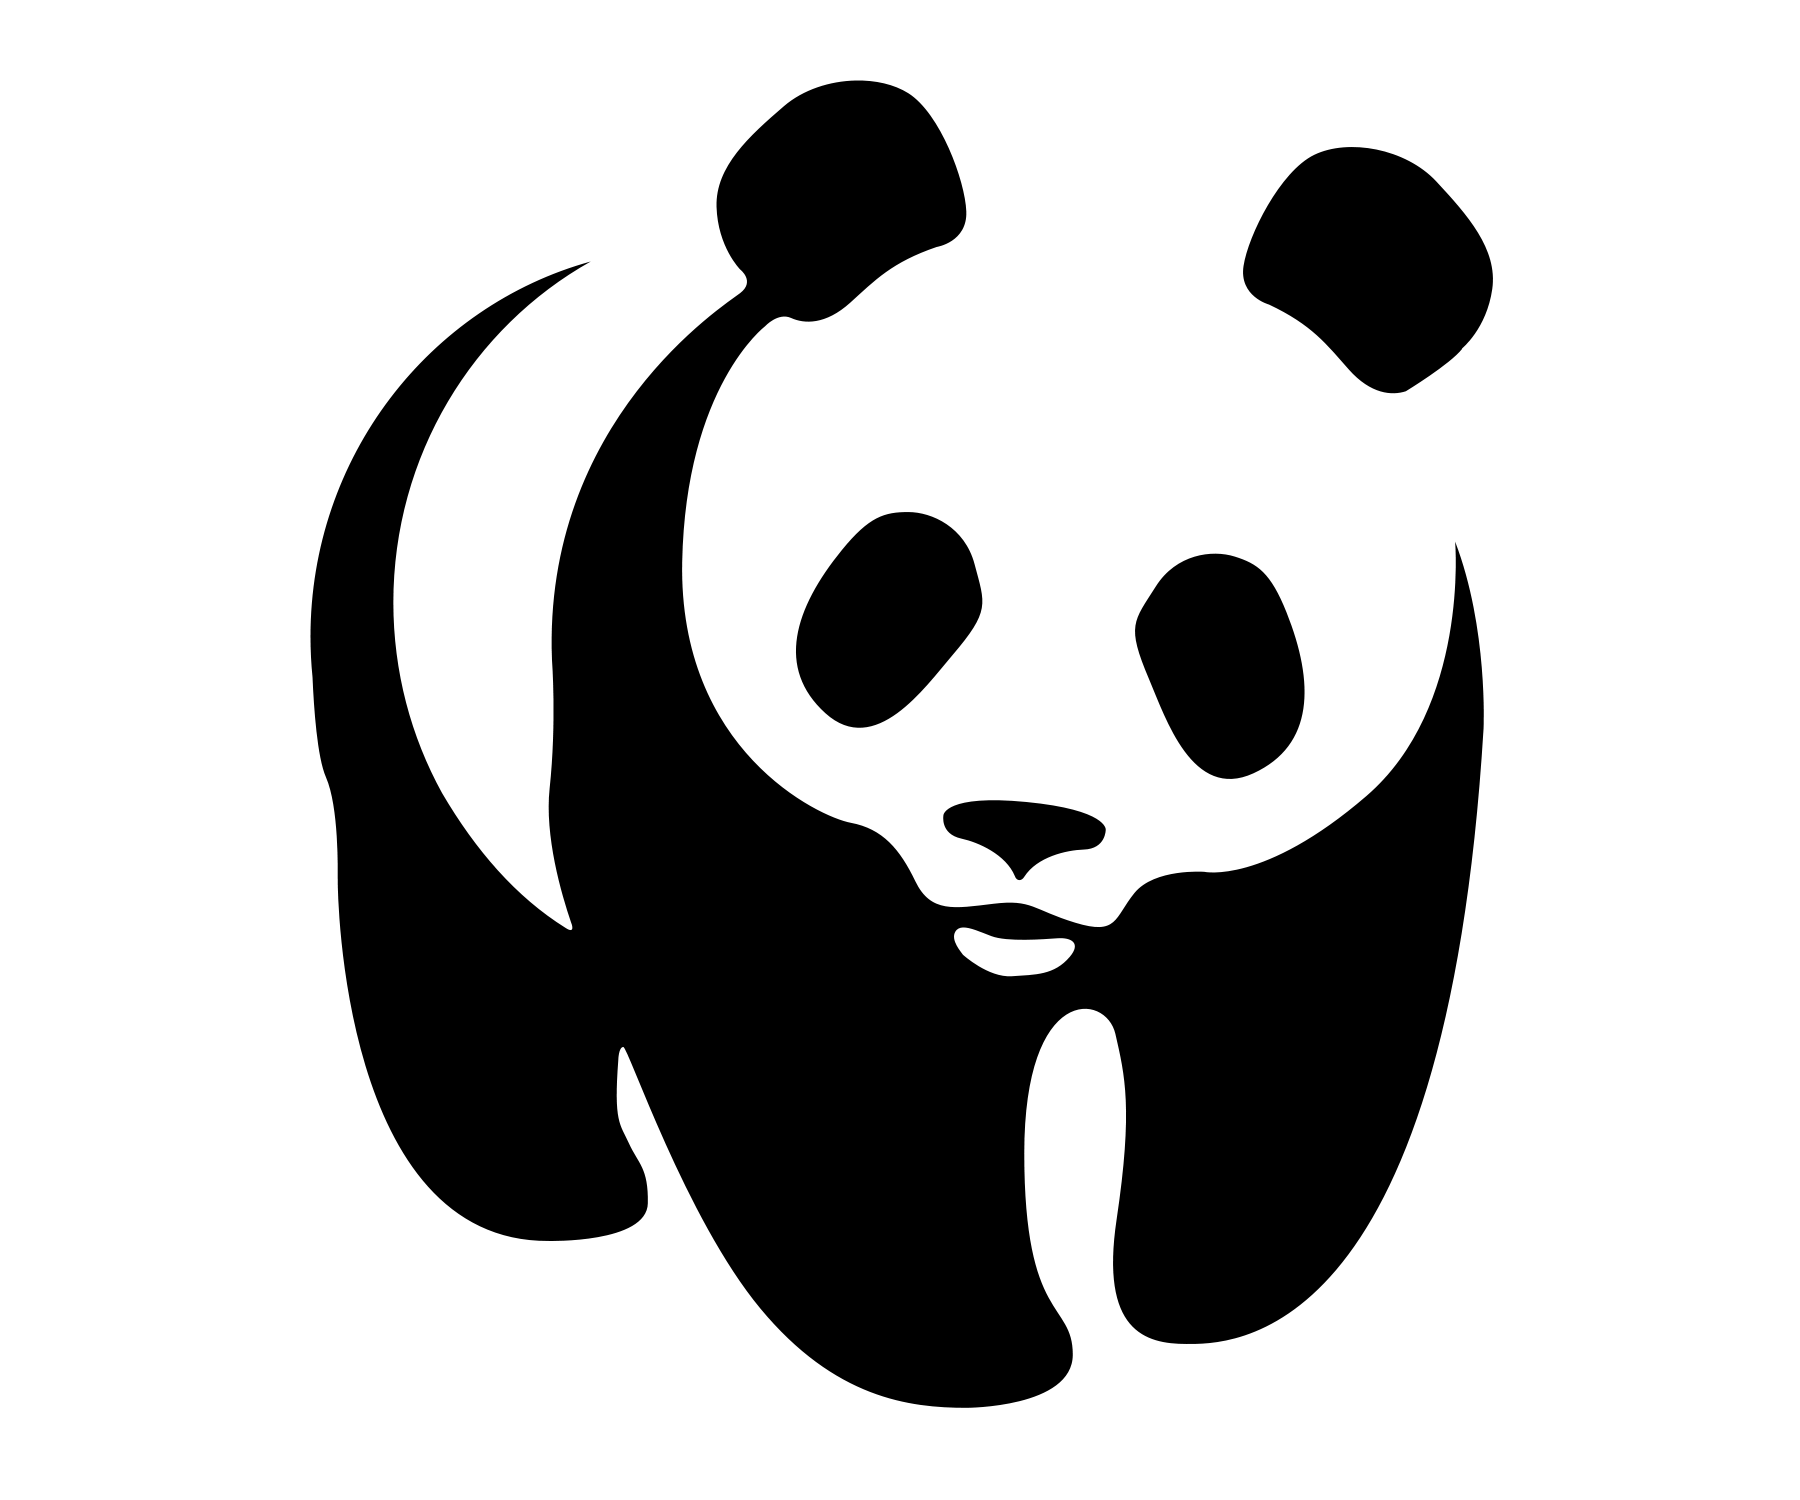 World Wildlife Fund (WWF) lgoo